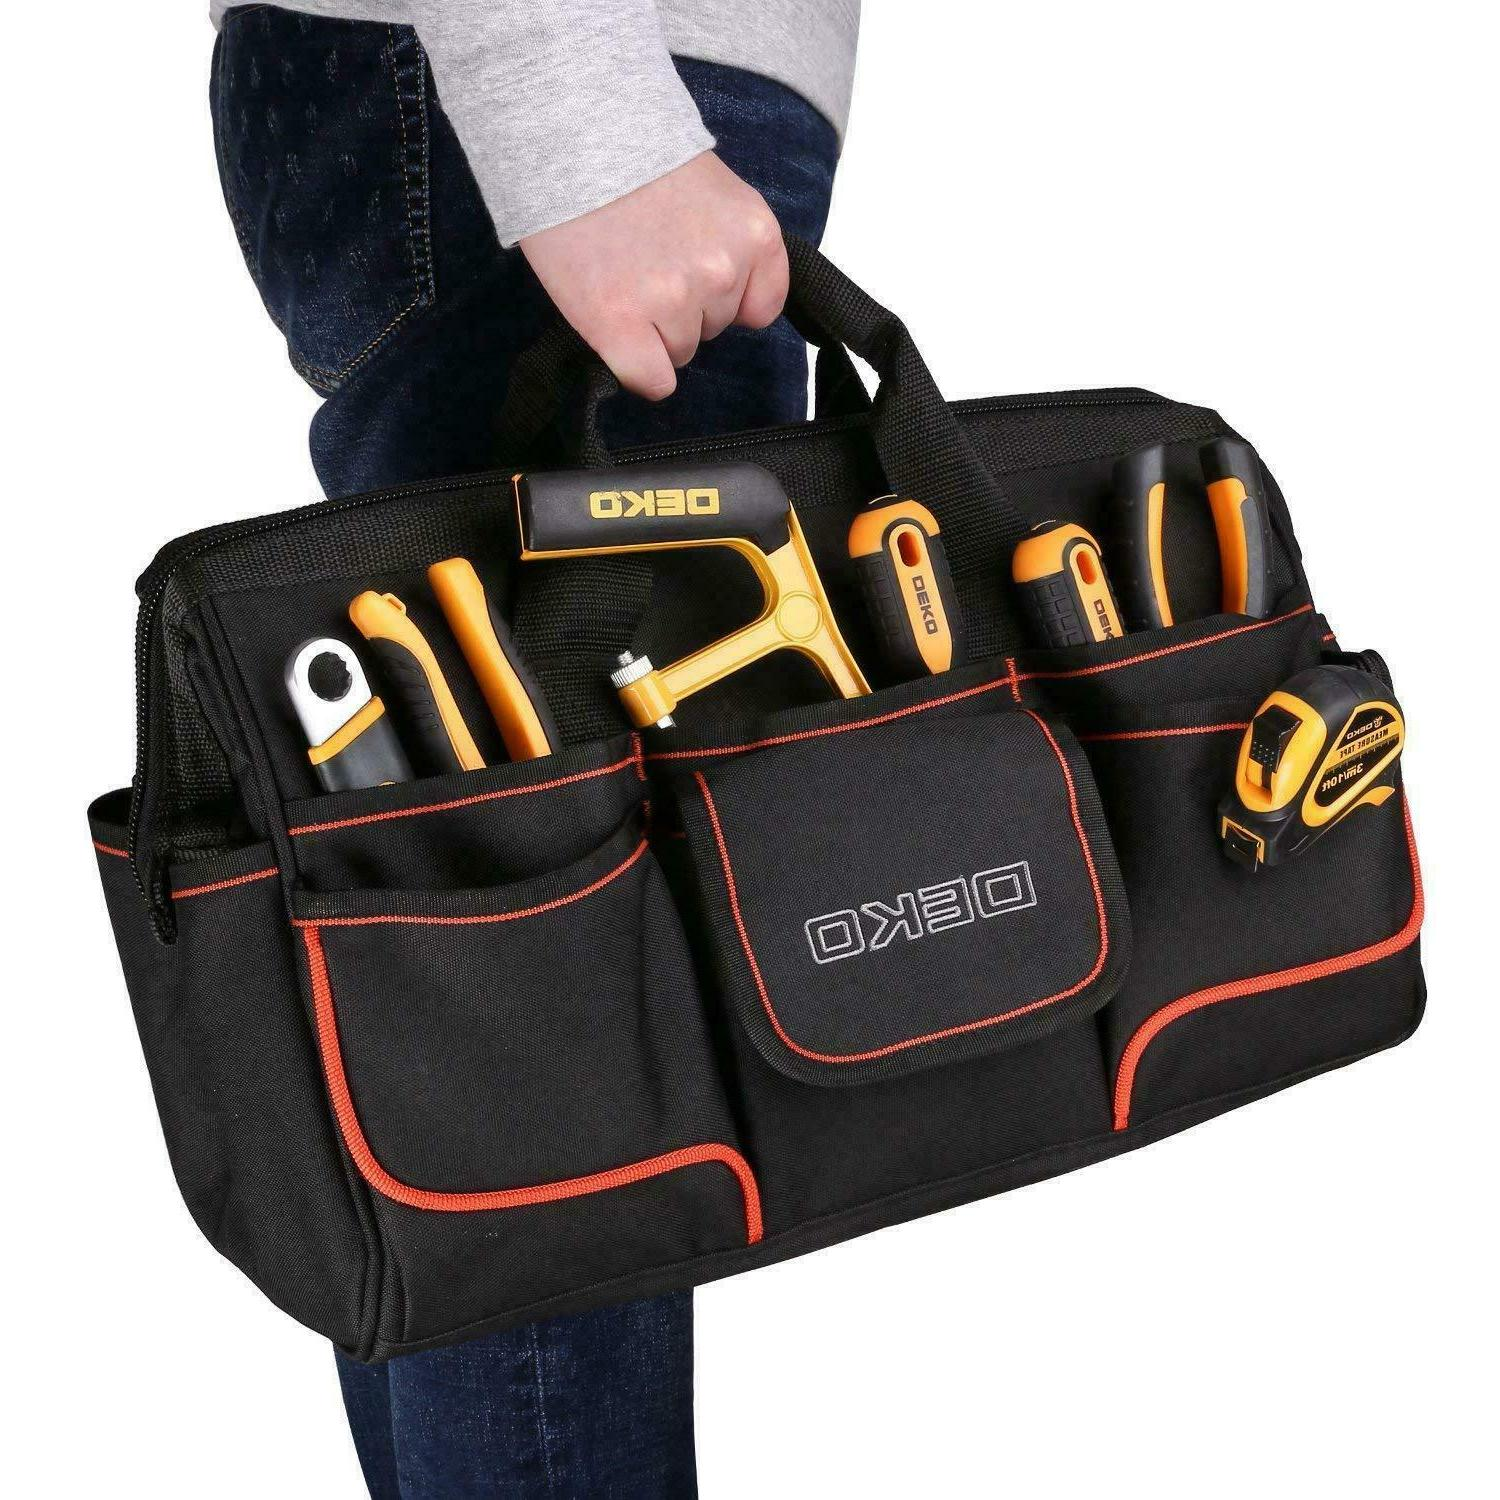 "DEKO 16""x 8.6"" x9.4"" Large 7 Pocket Heavy Duty Tool Bag Wide"